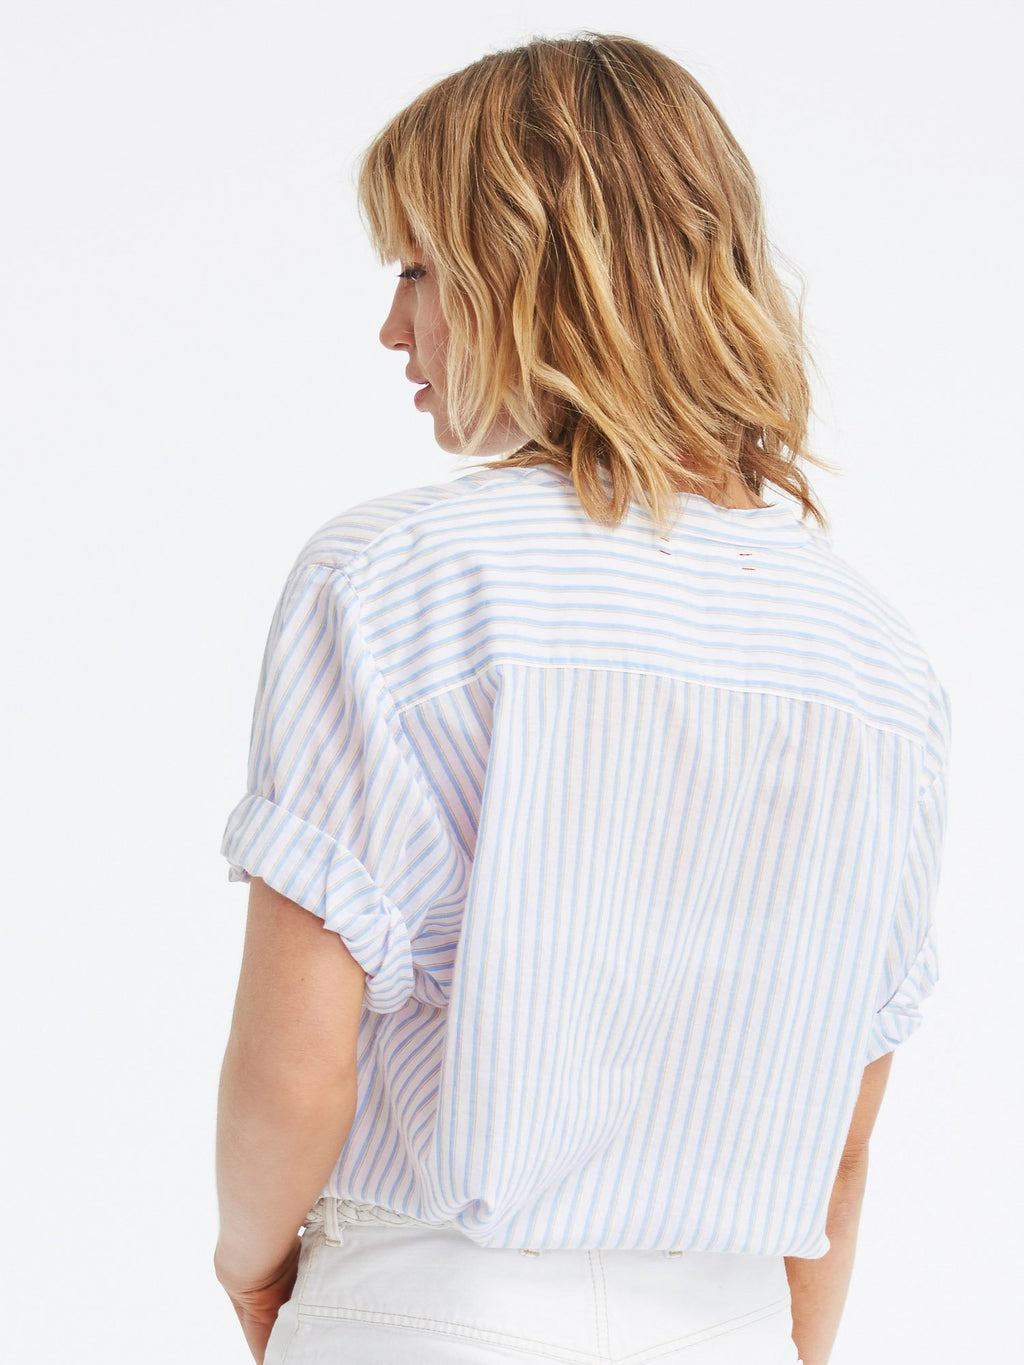 Xirena Kayden Shirt in Stripe Celeste